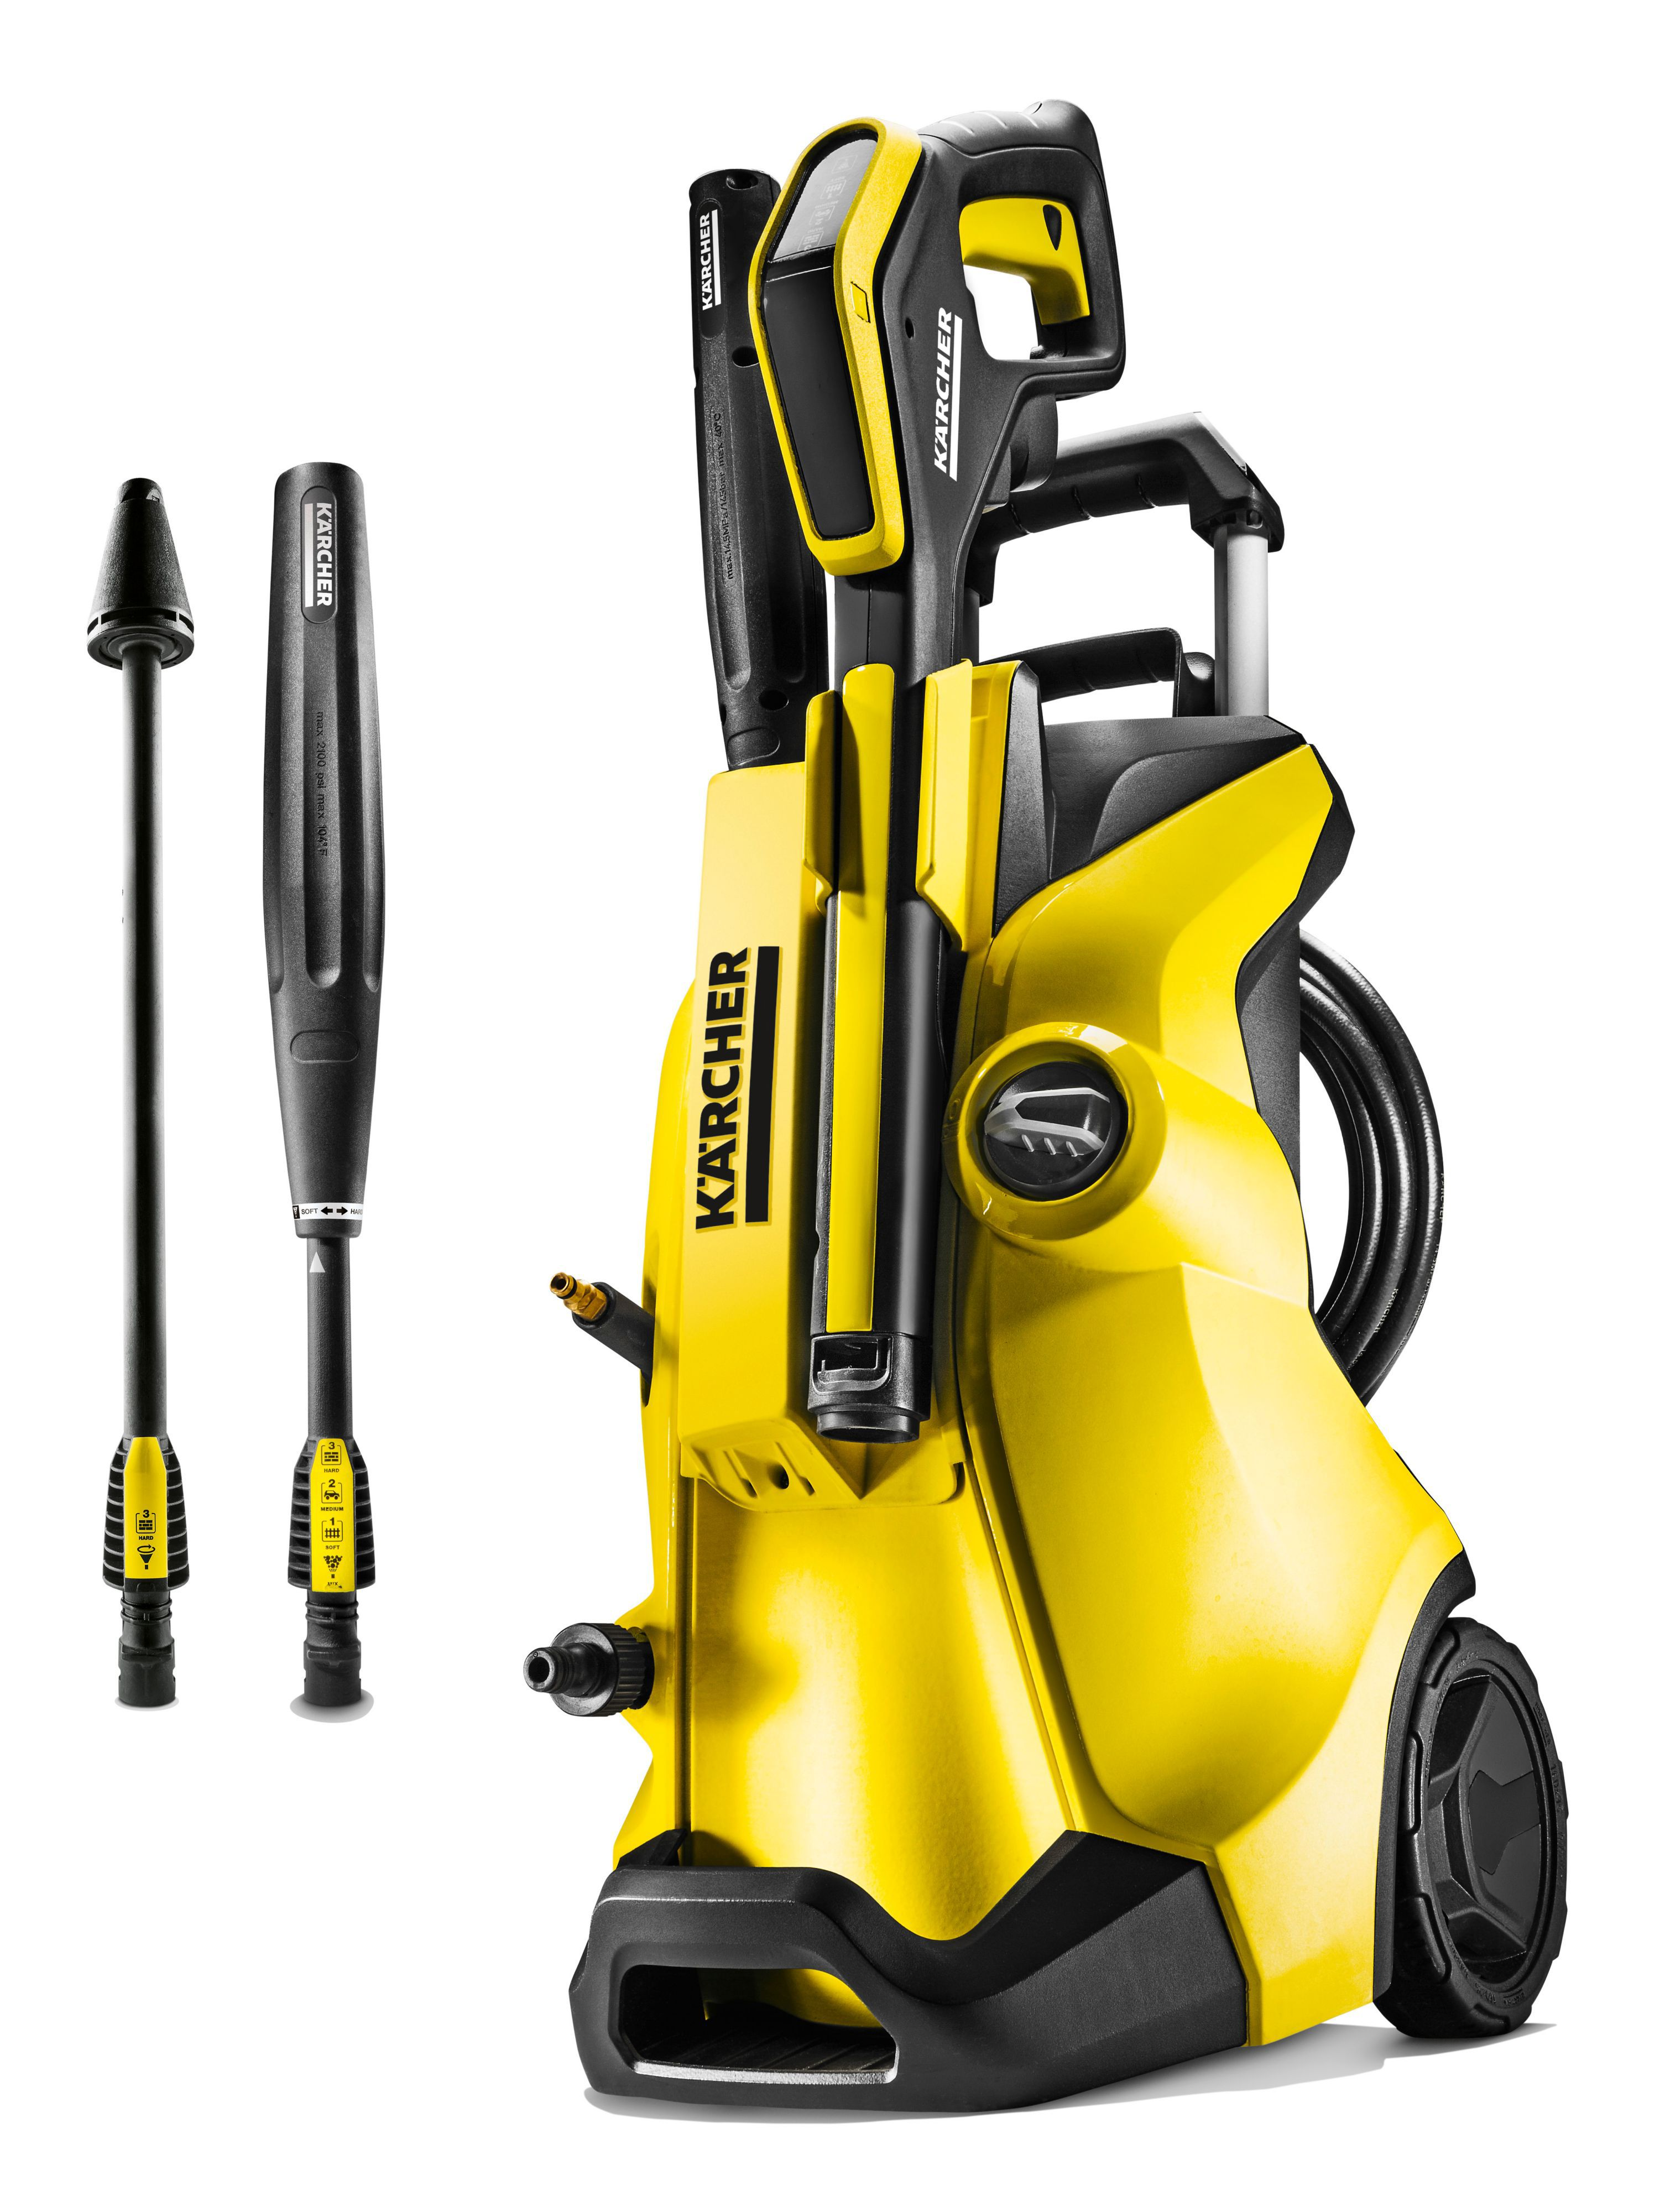 karcher k4 full control pressure washer departments diy at b q. Black Bedroom Furniture Sets. Home Design Ideas